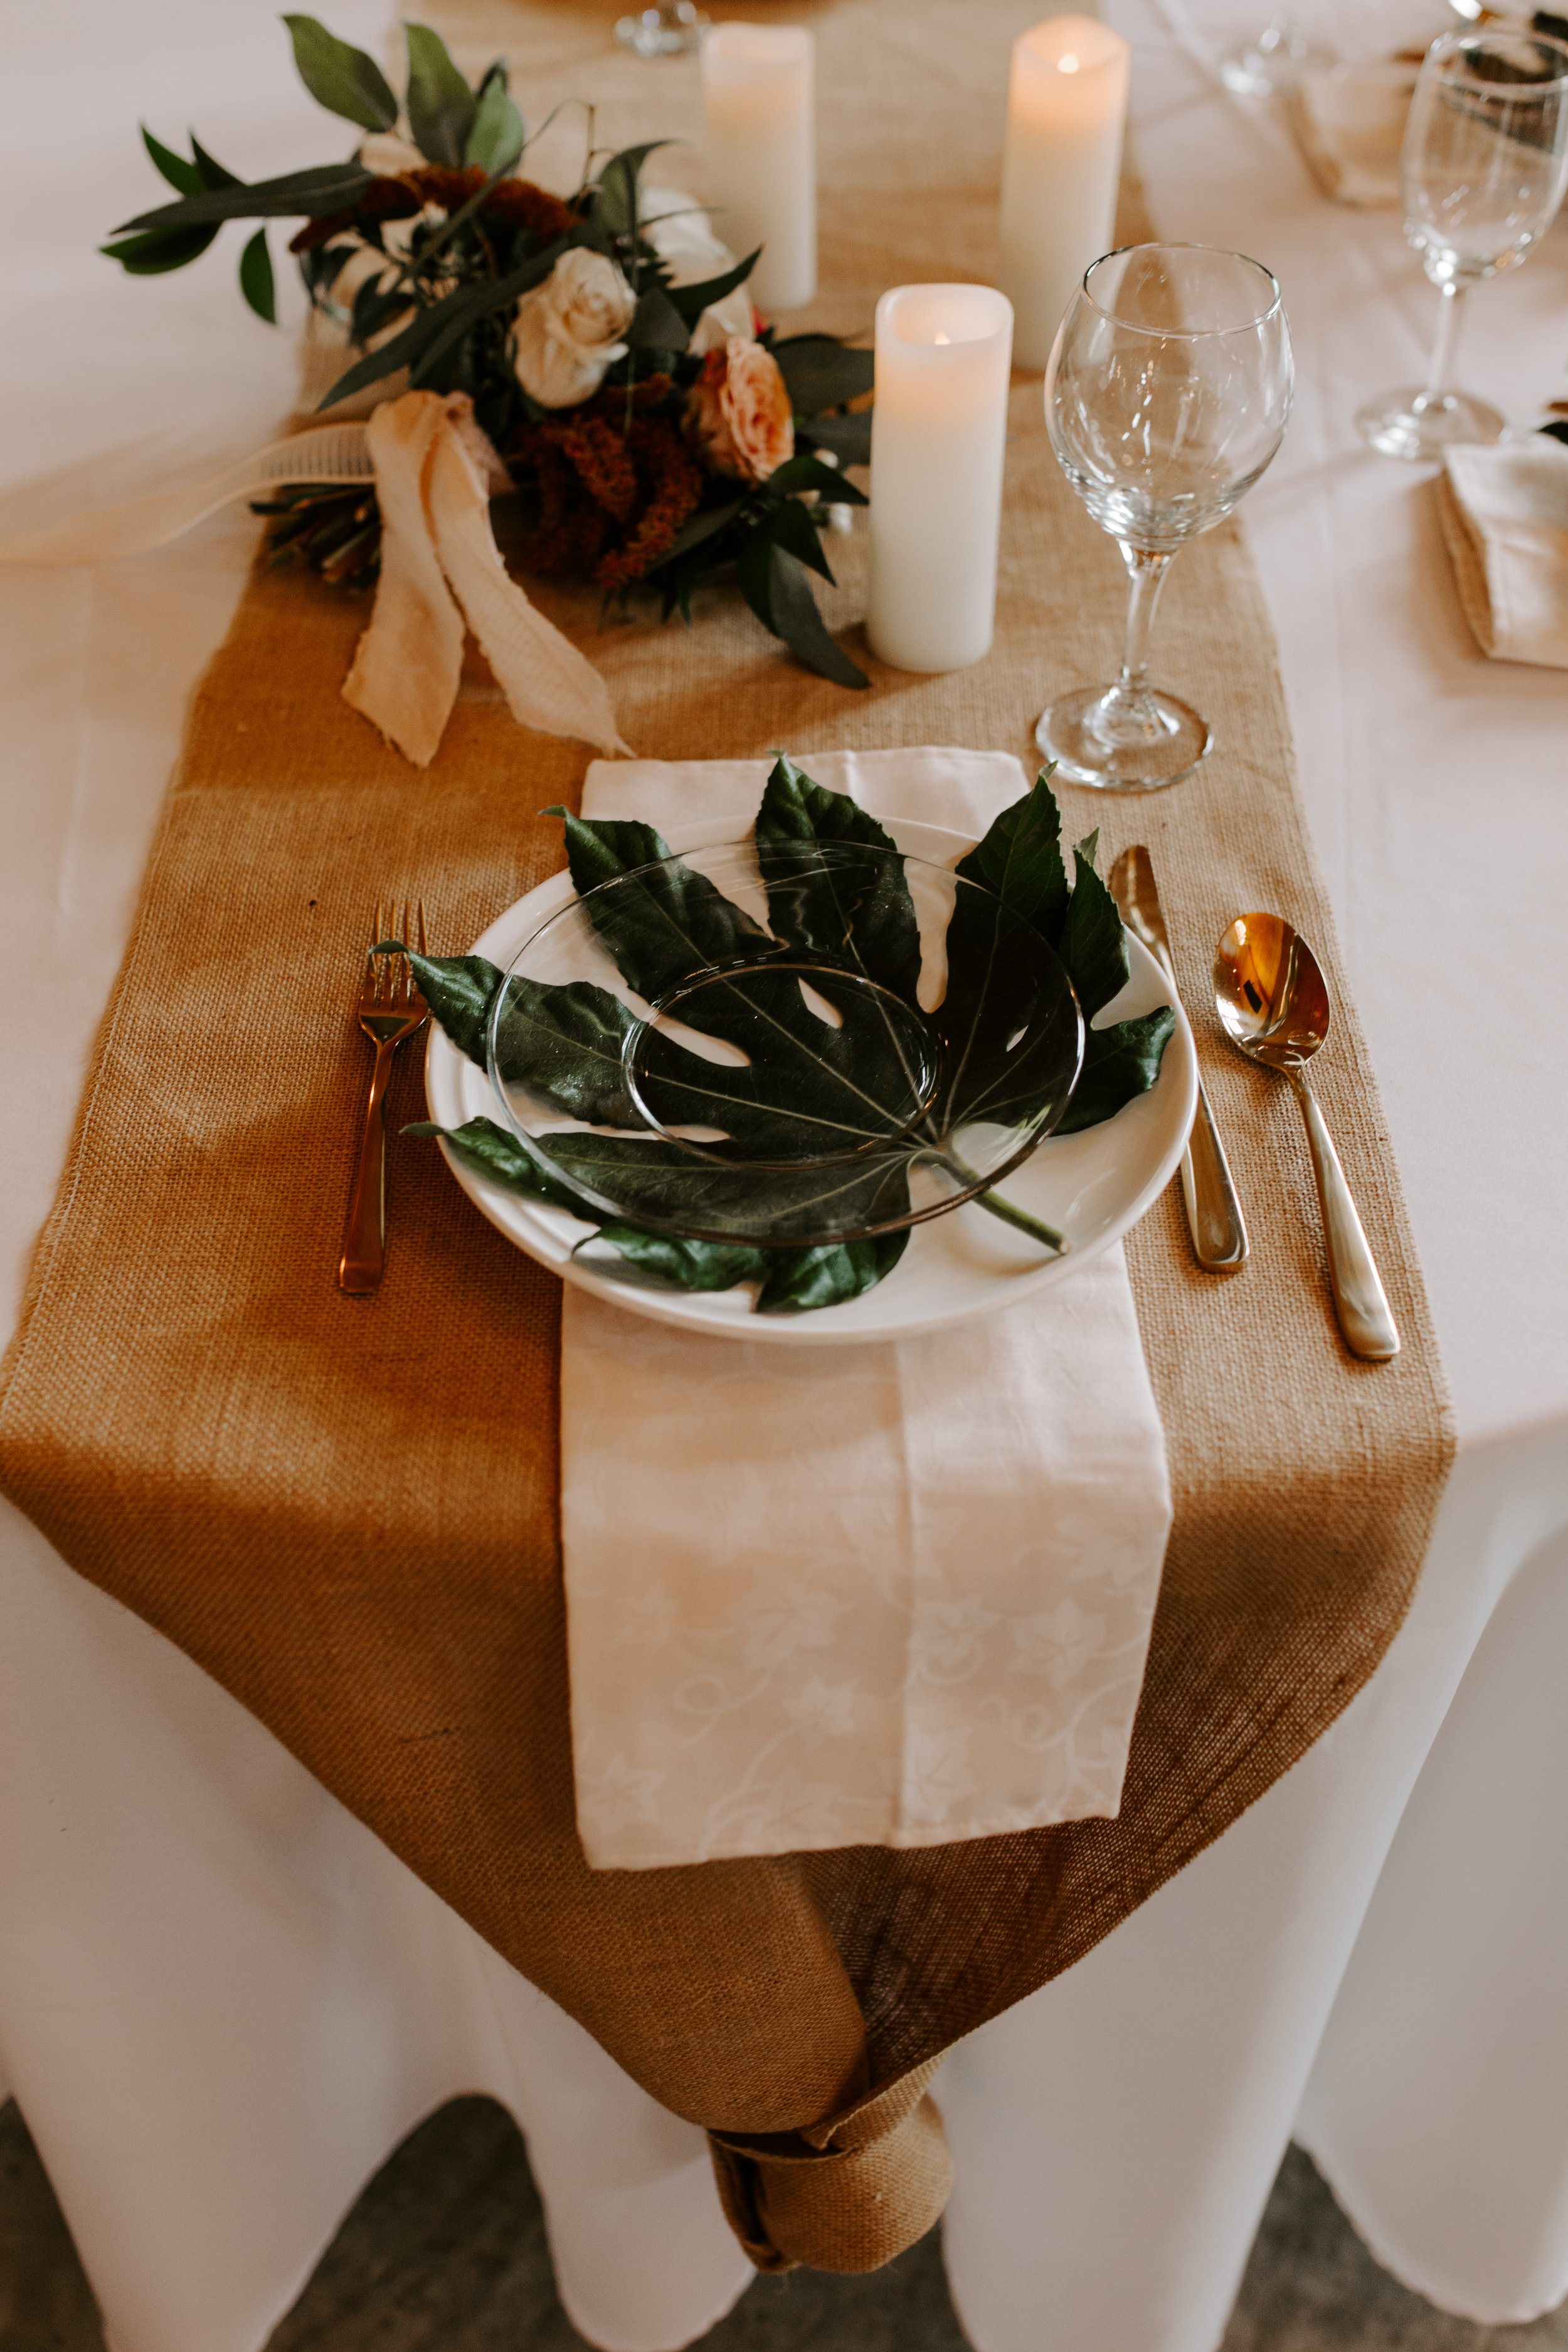 Styled wedding reception by Lavender Blue with large leaf motif on white plate and candles with flowers in white vase